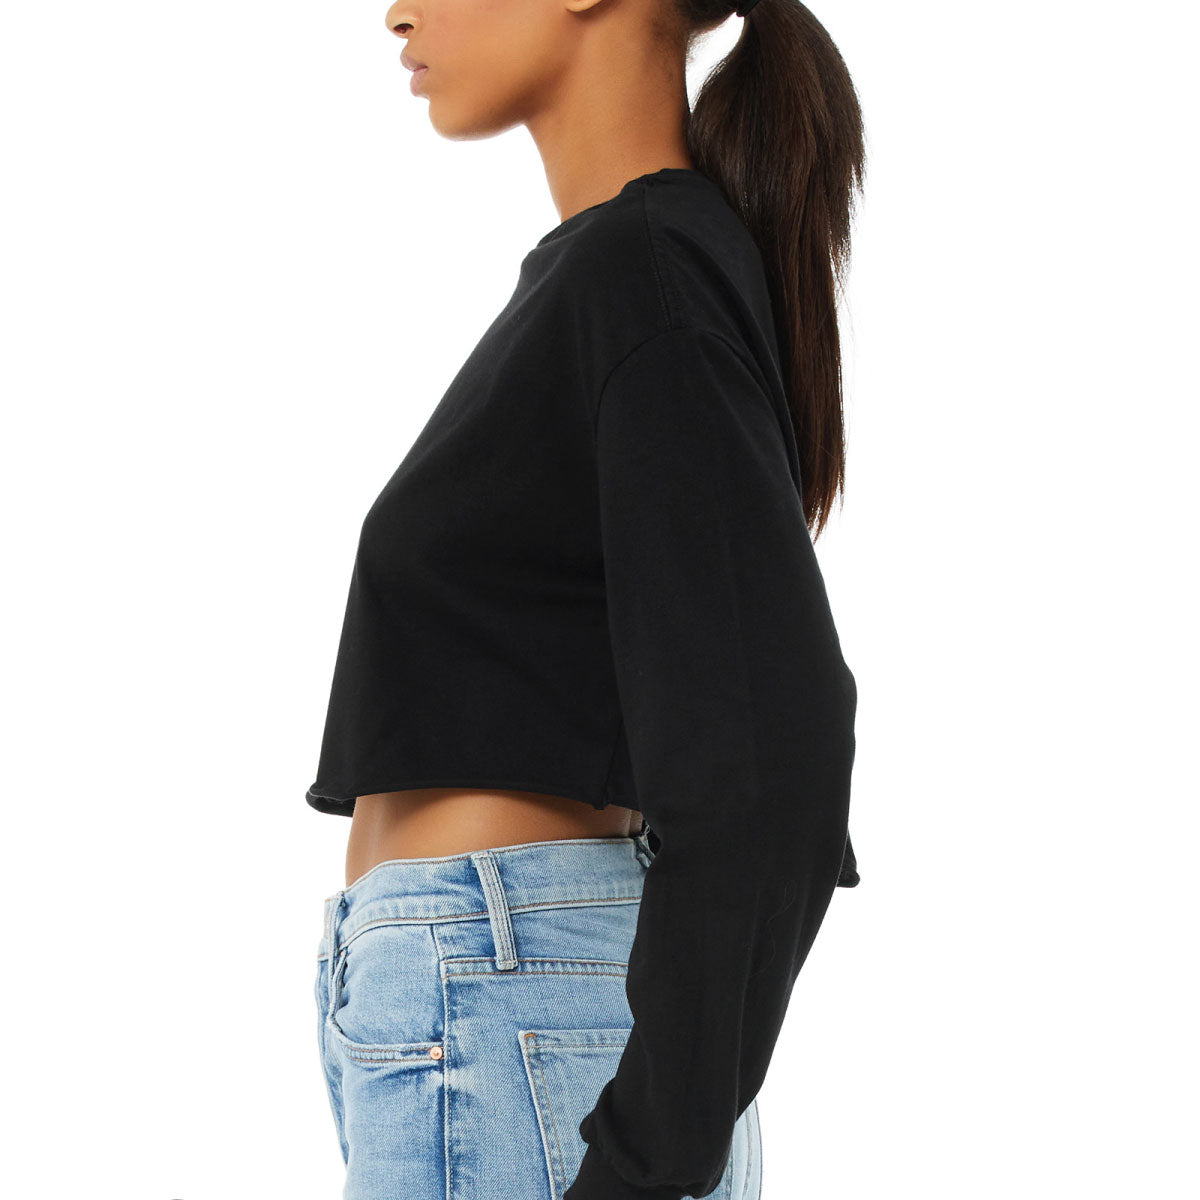 Gym Please Cropped Long Sleeve Tee